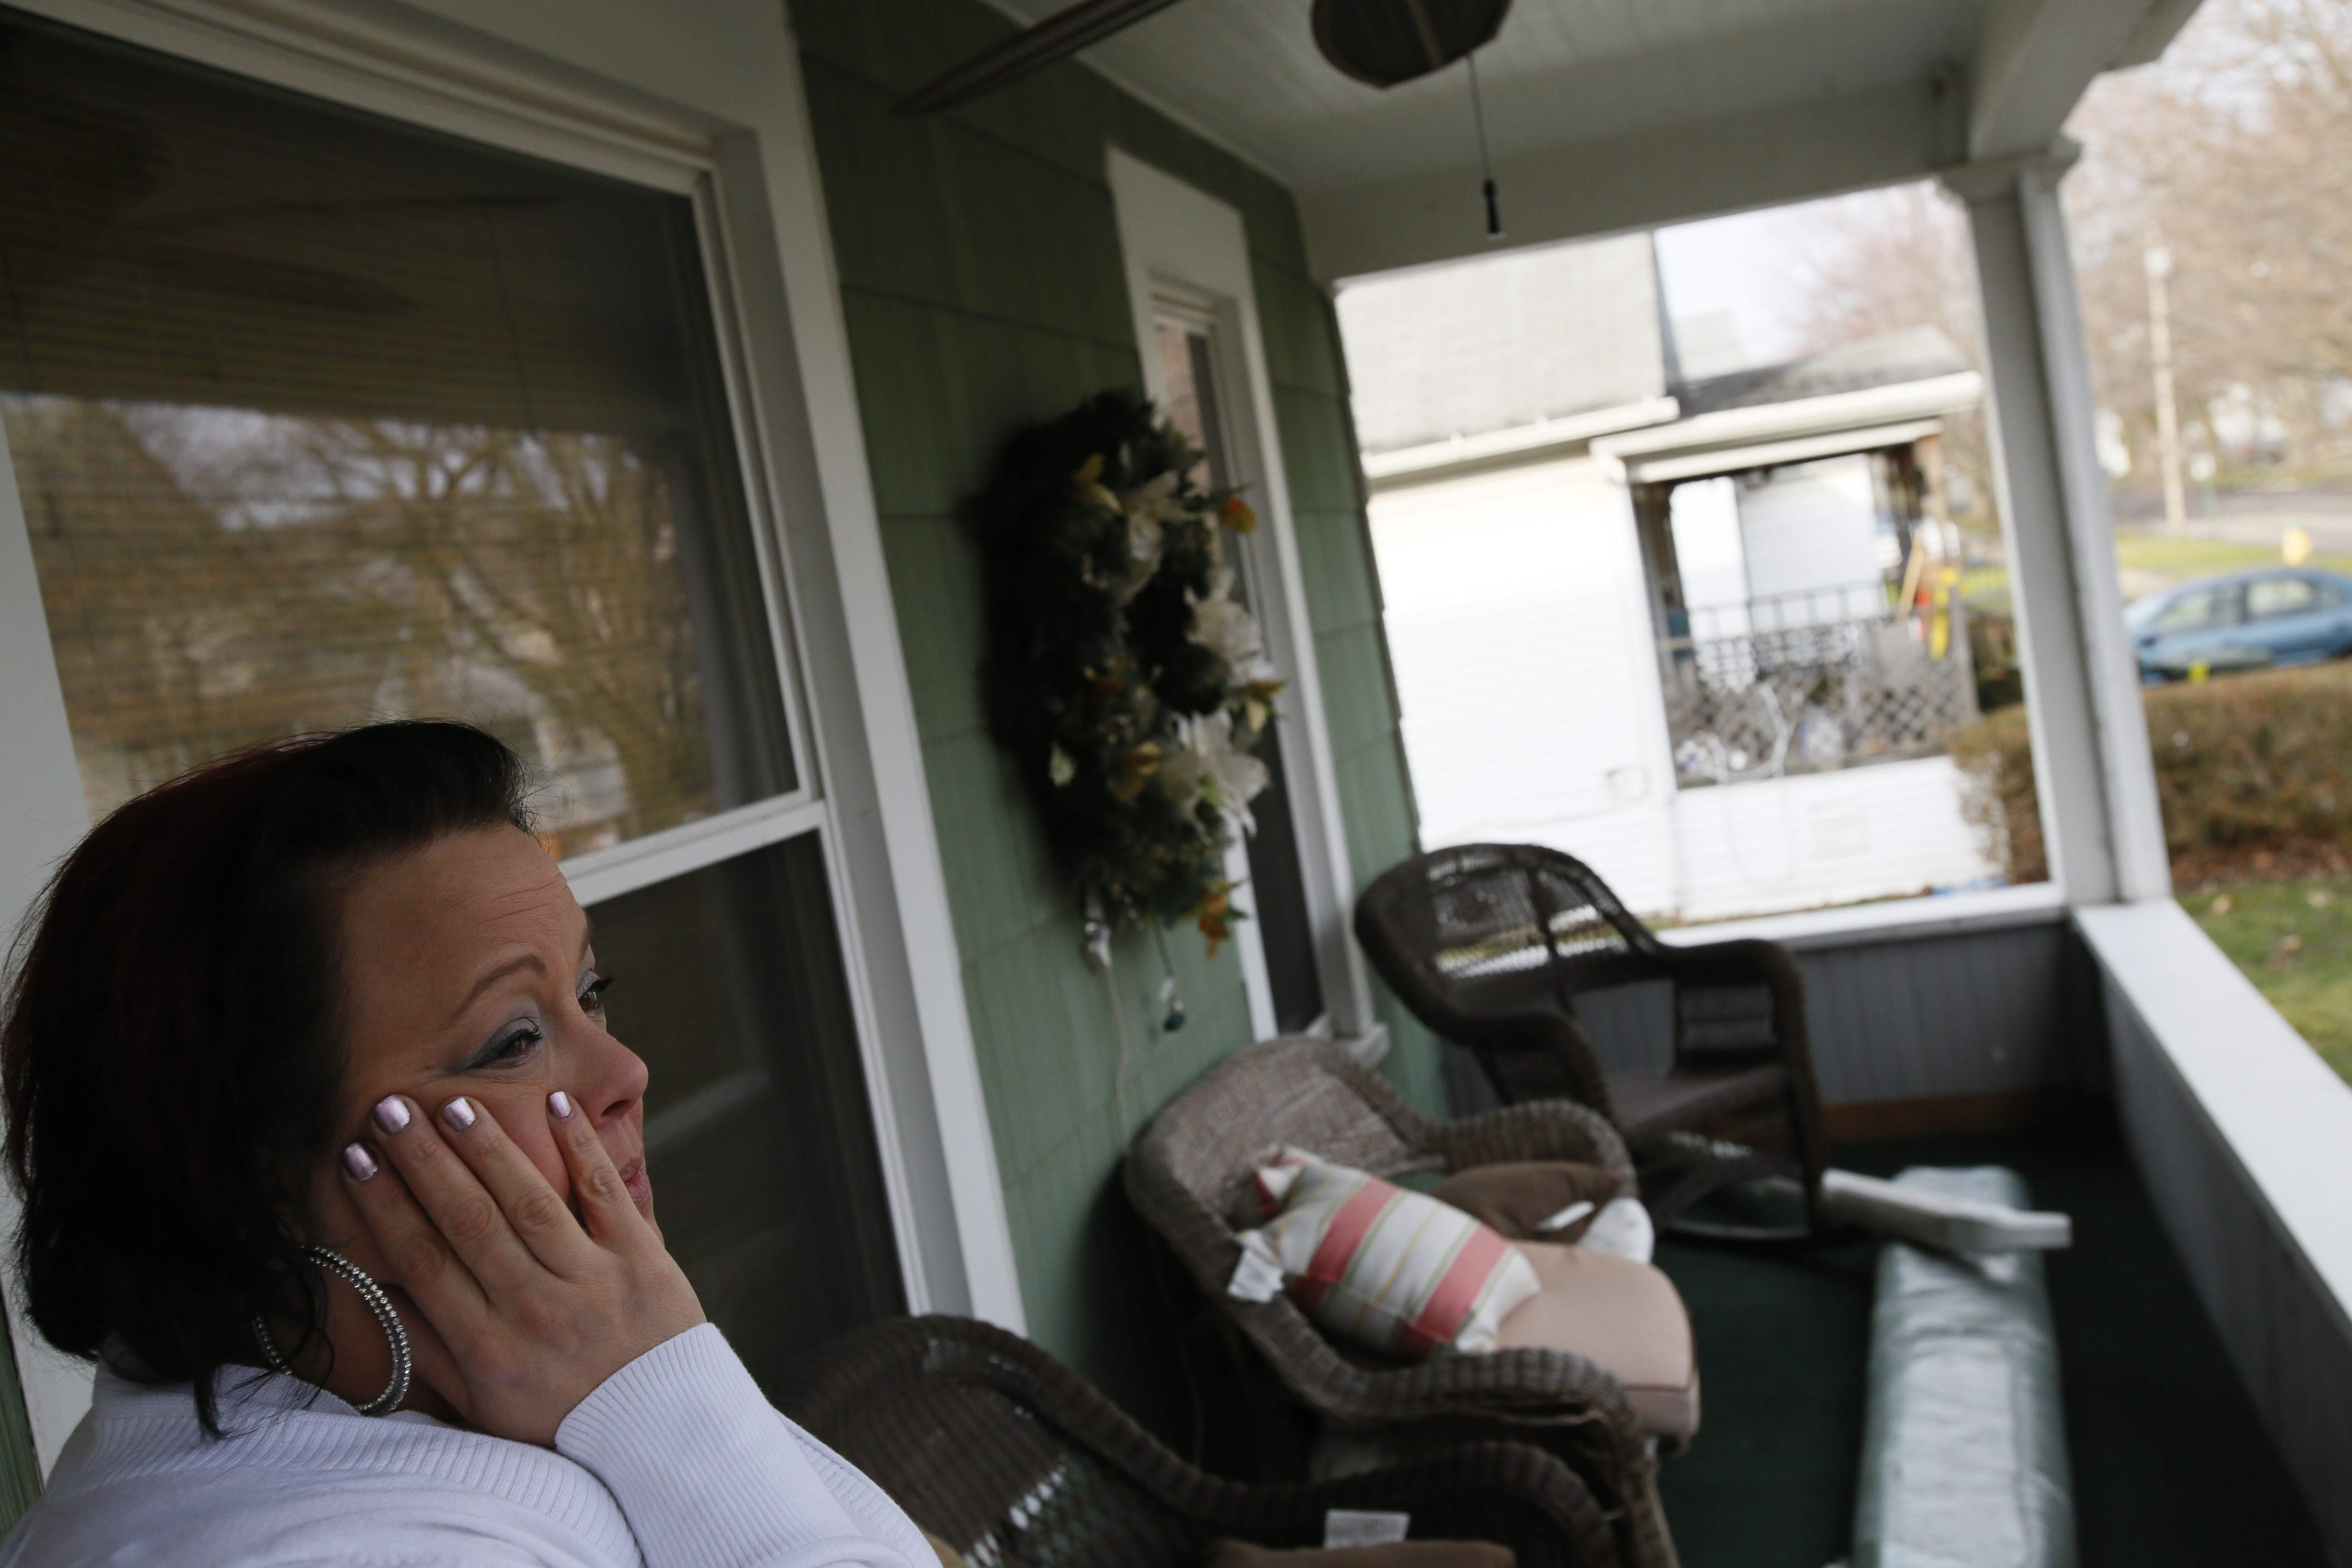 Krista Lisi, who lives next to the house on Third Avenue in North Tonawanda where  Dorothy Burns, 84, and Kathleen Watson, 62, died, said the women kept to themselves.